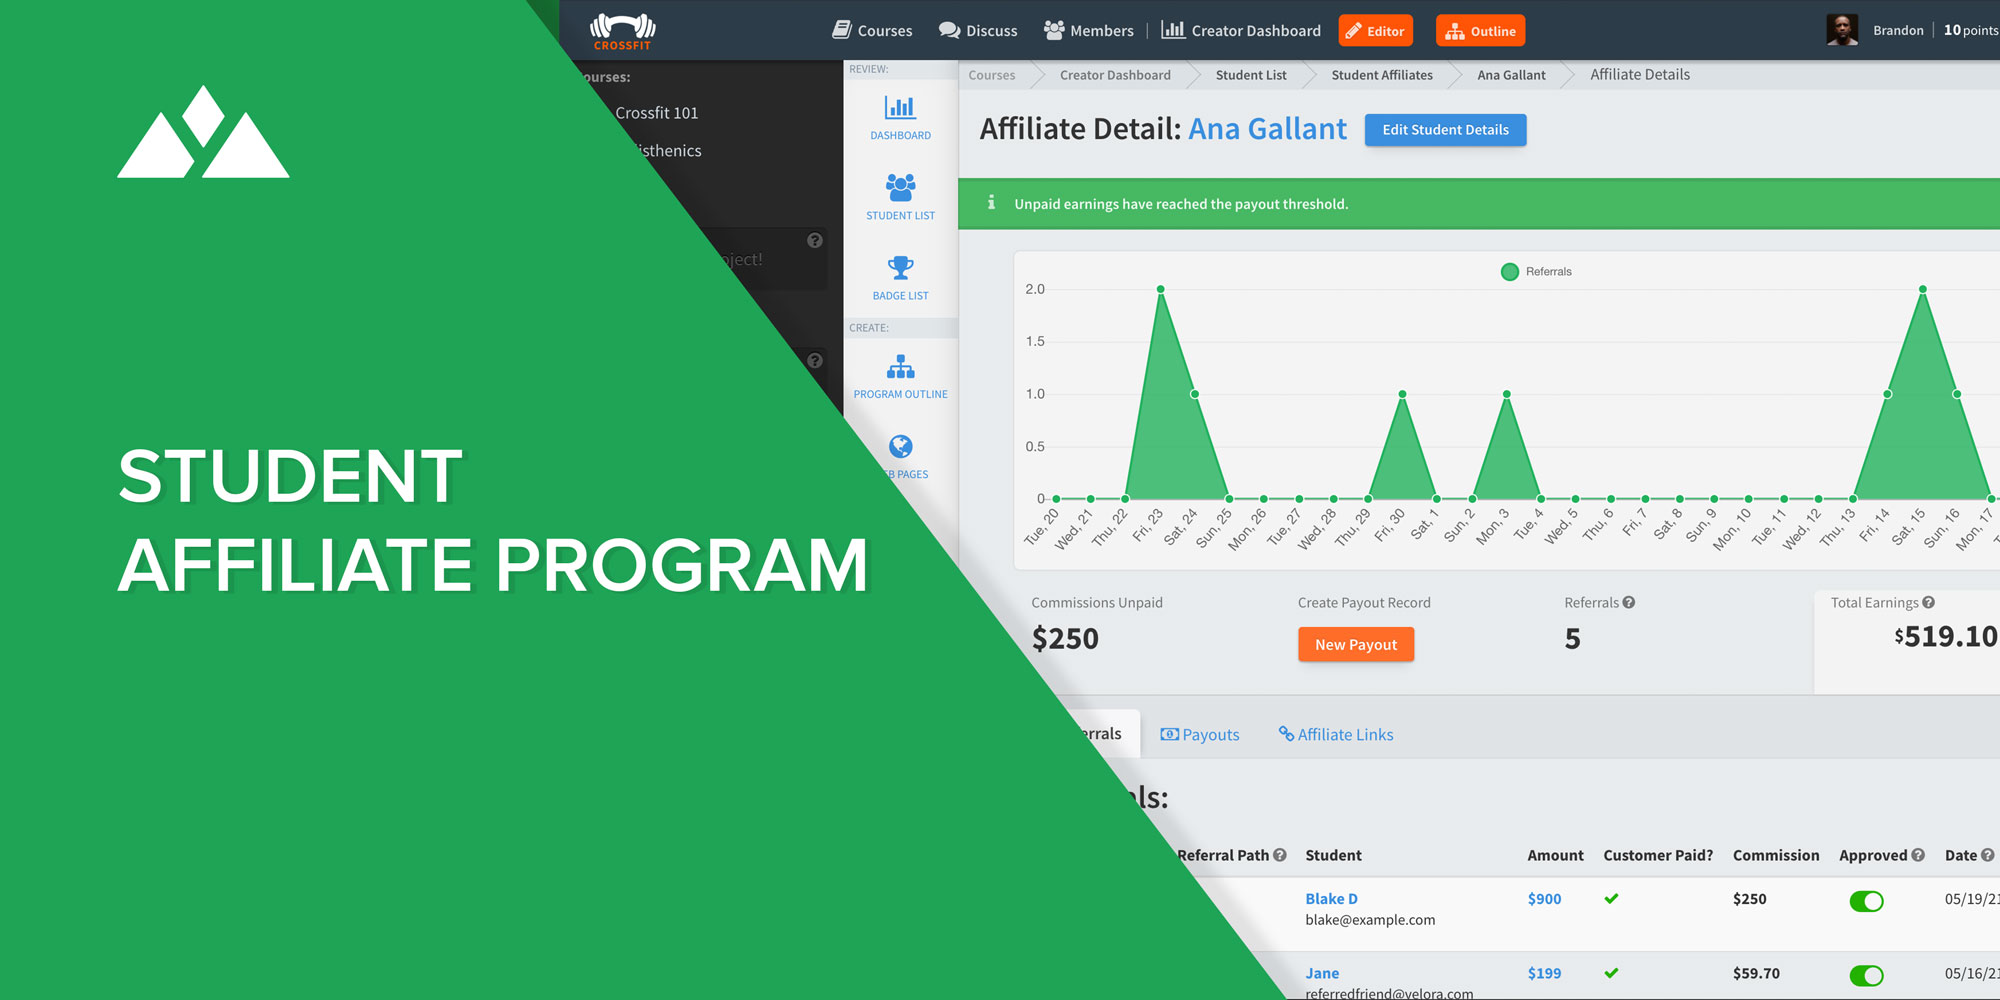 Heights Platforms online course creation software has a complete built-in affiliate feature